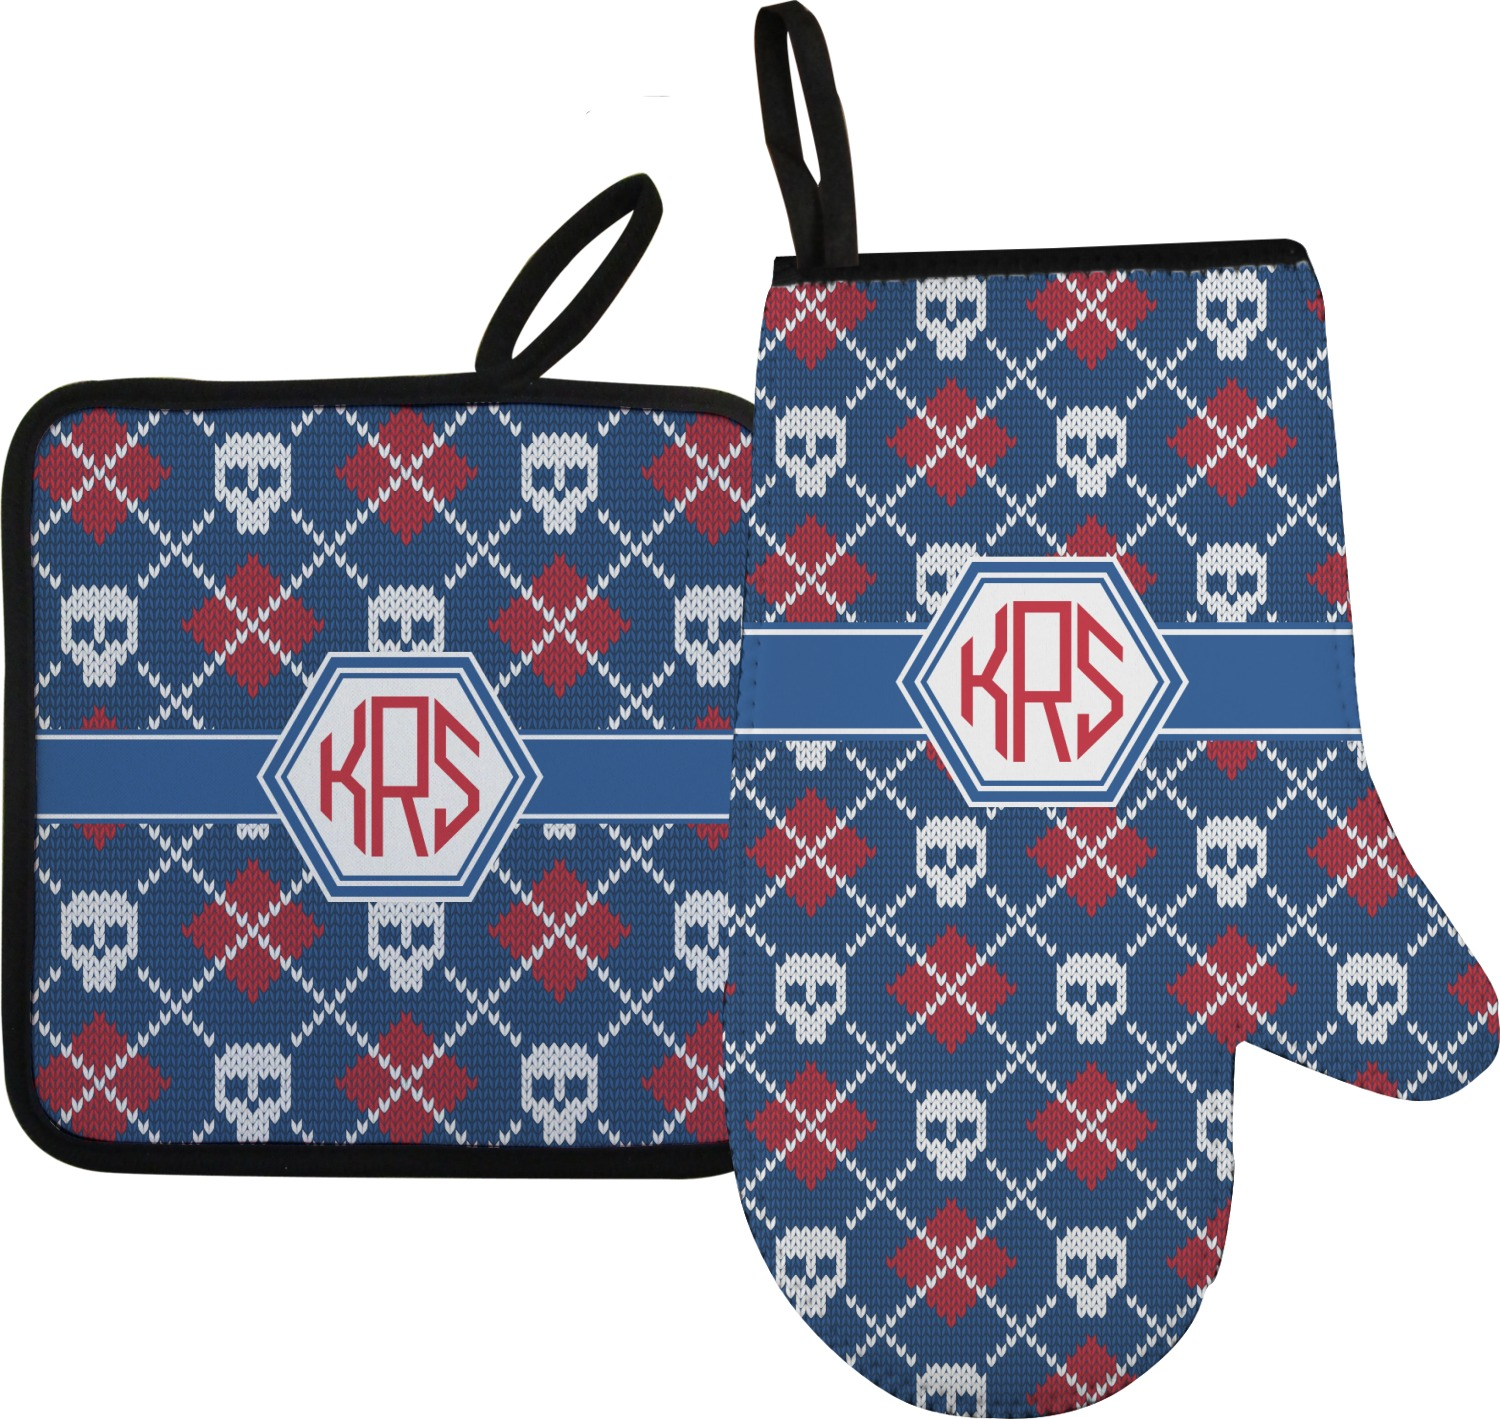 Knitted Argyle & Skulls Oven Mitt & Pot Holder (Personalized ...